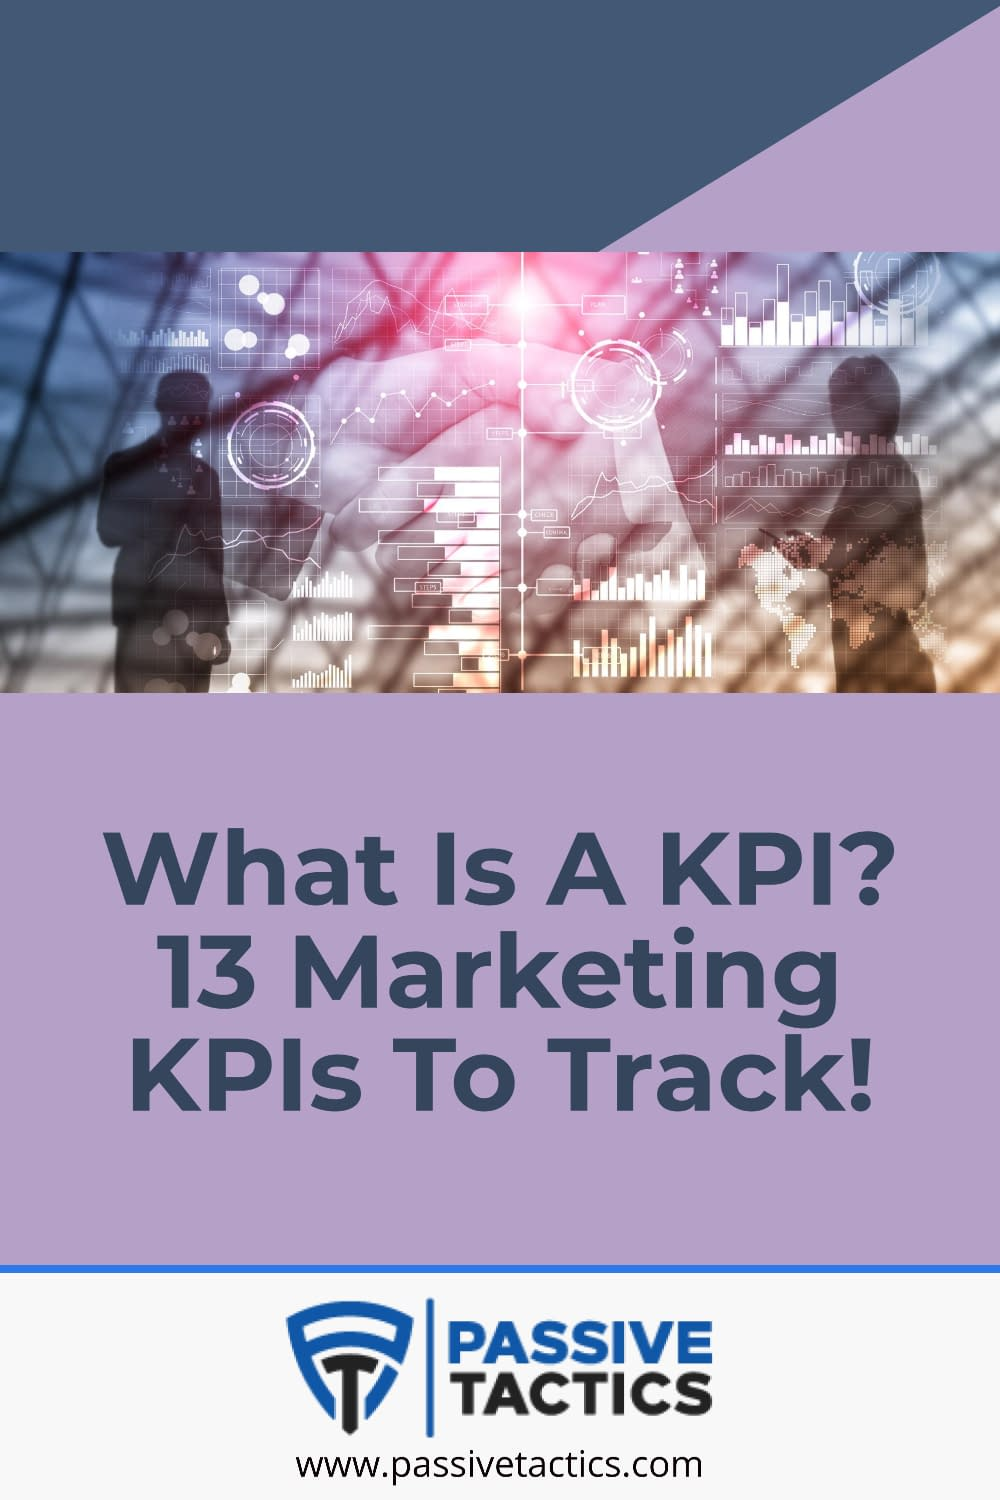 What Is A KPI? 13 Marketing KPIs To Track!